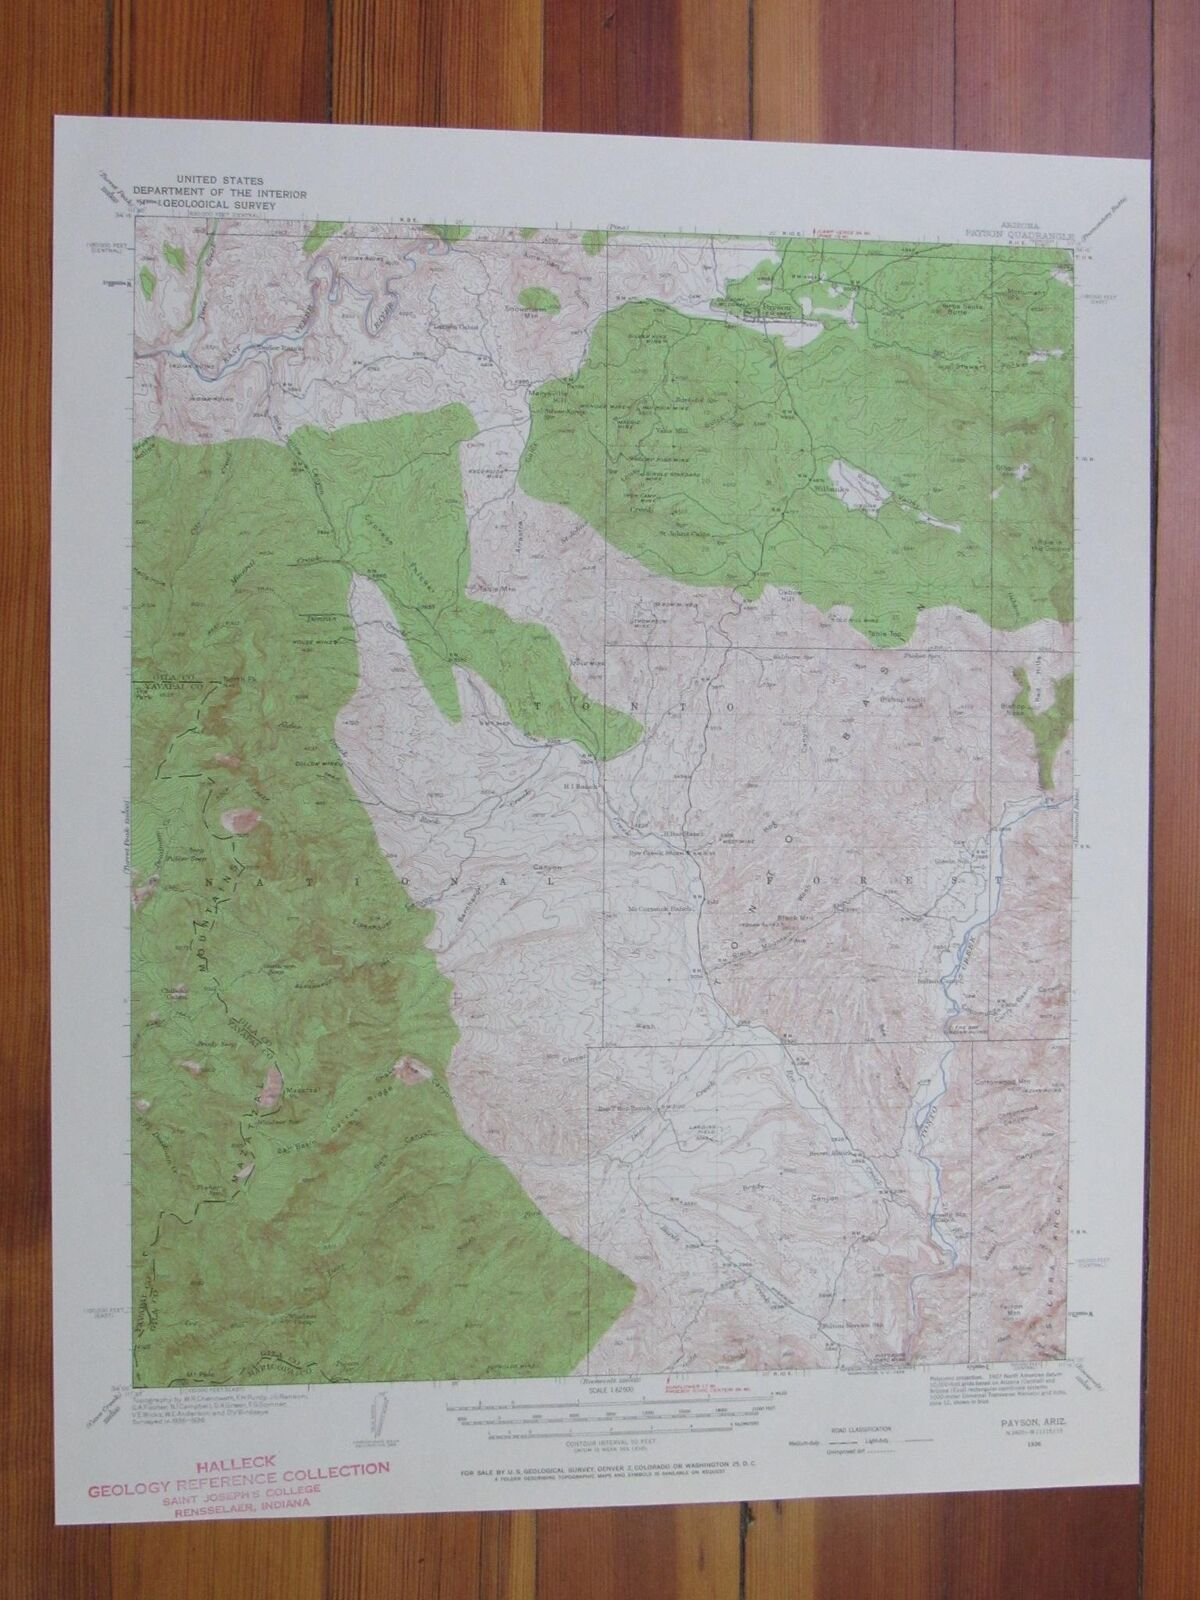 Payson arizona 1958 original vintage usgs topo map 3495 picclick payson arizona 1958 original vintage usgs topo map 1 of 1only 1 available publicscrutiny Gallery